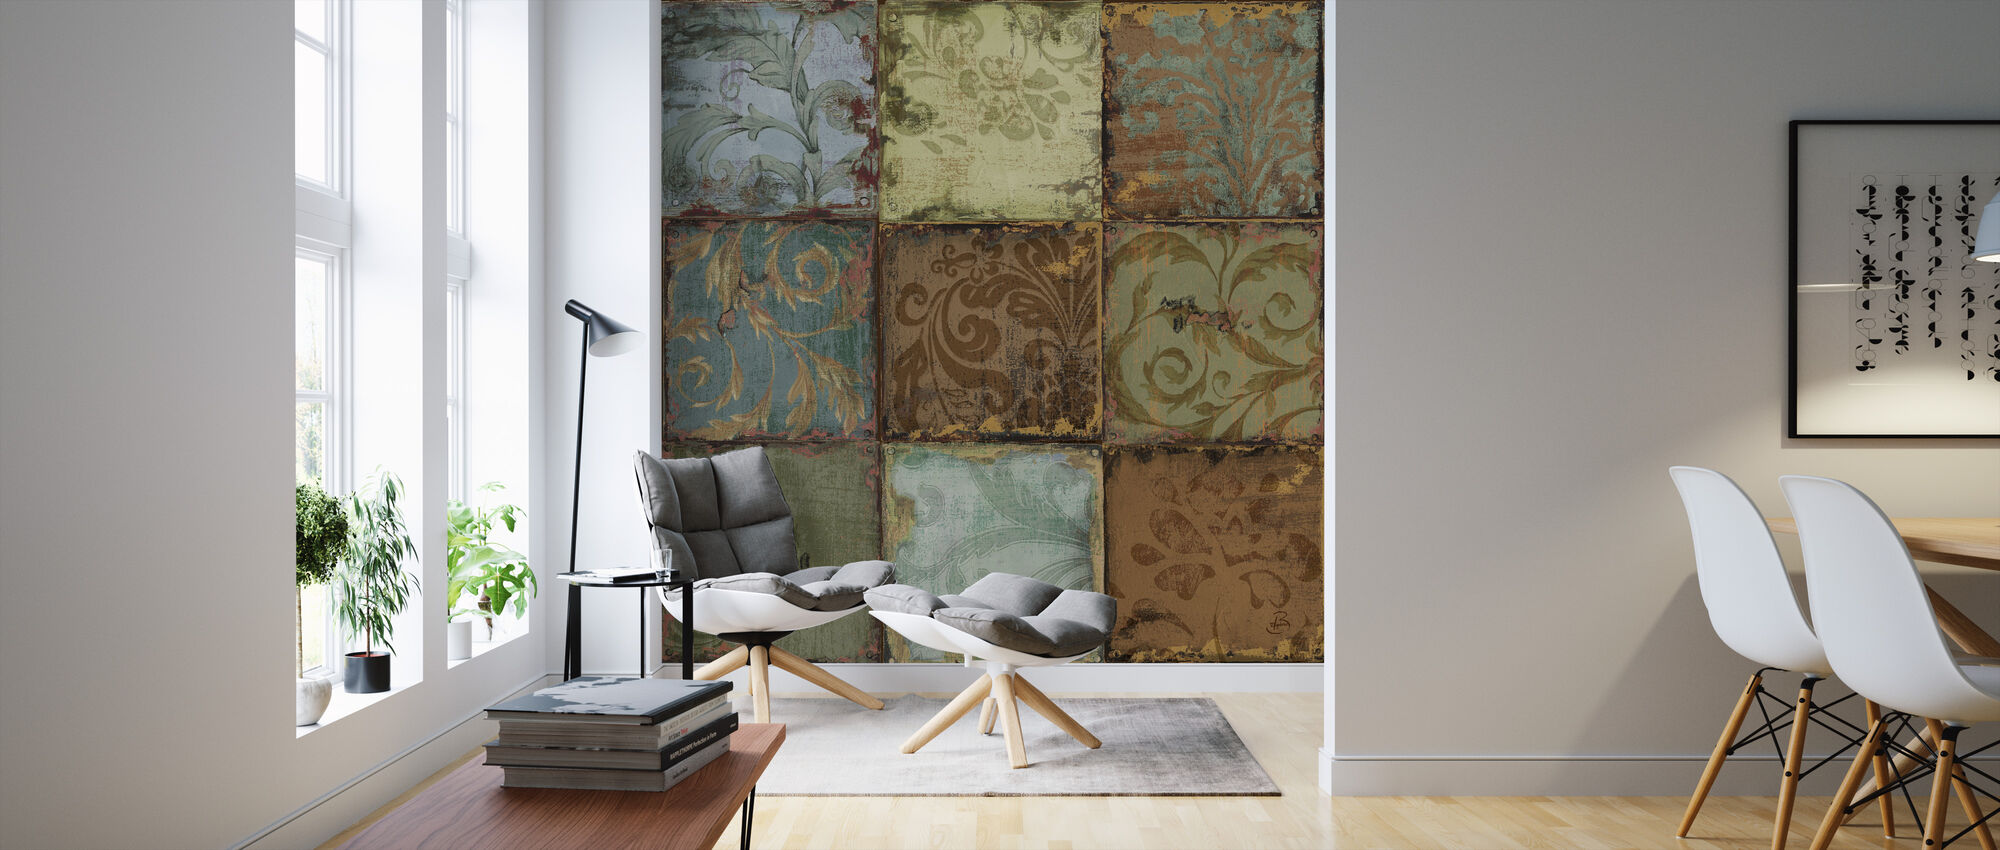 Tapestry Tiles 1 - Wallpaper - Living Room